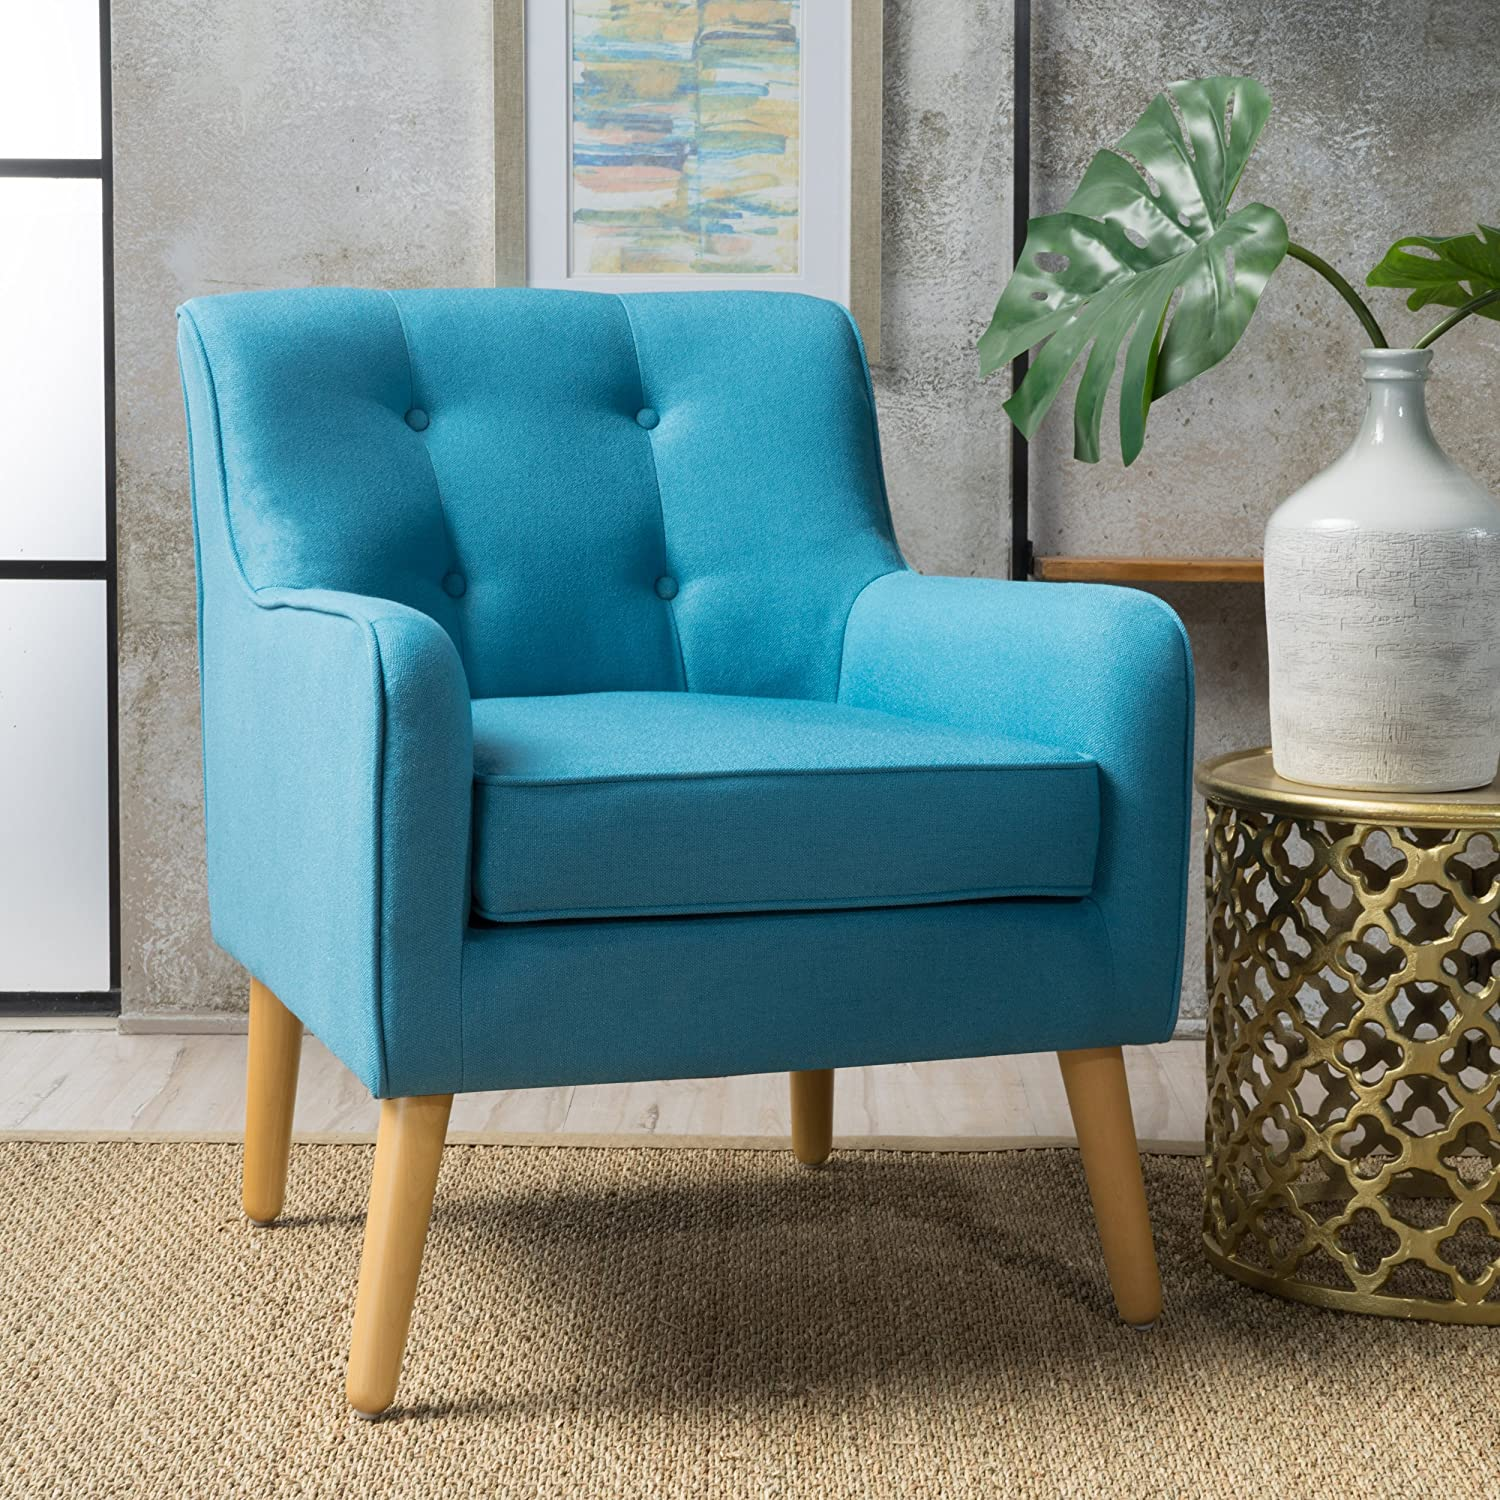 Fontinella Mid Century Tufted Back Fabric Arm Chair Teal